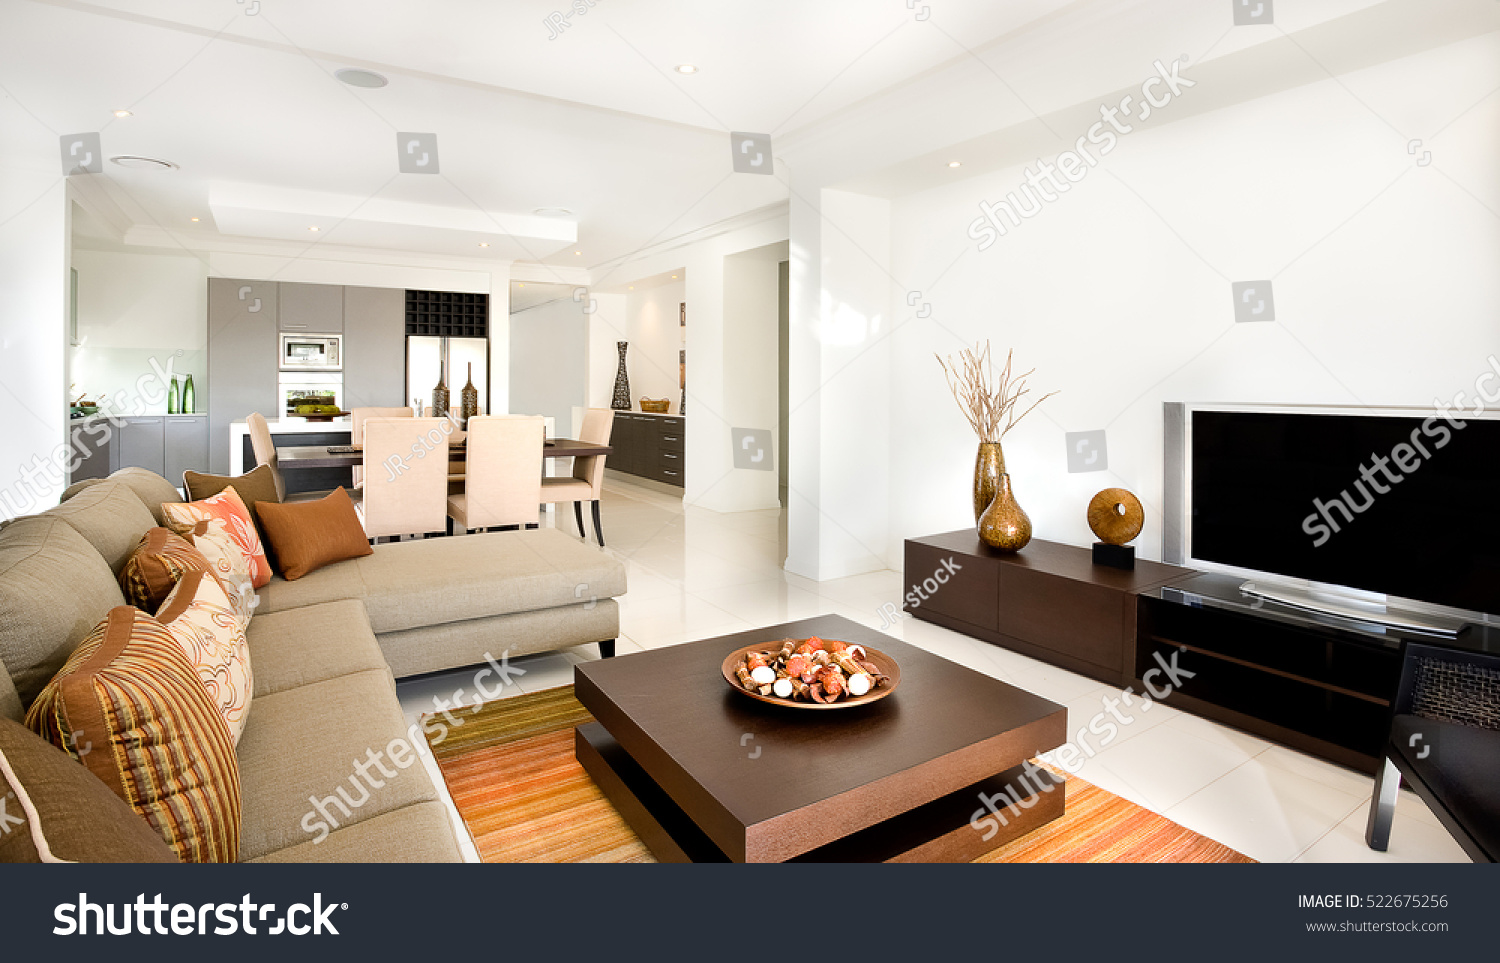 There sofas chairs pillows modern living stock photo - Deco moderne woonkamer ...